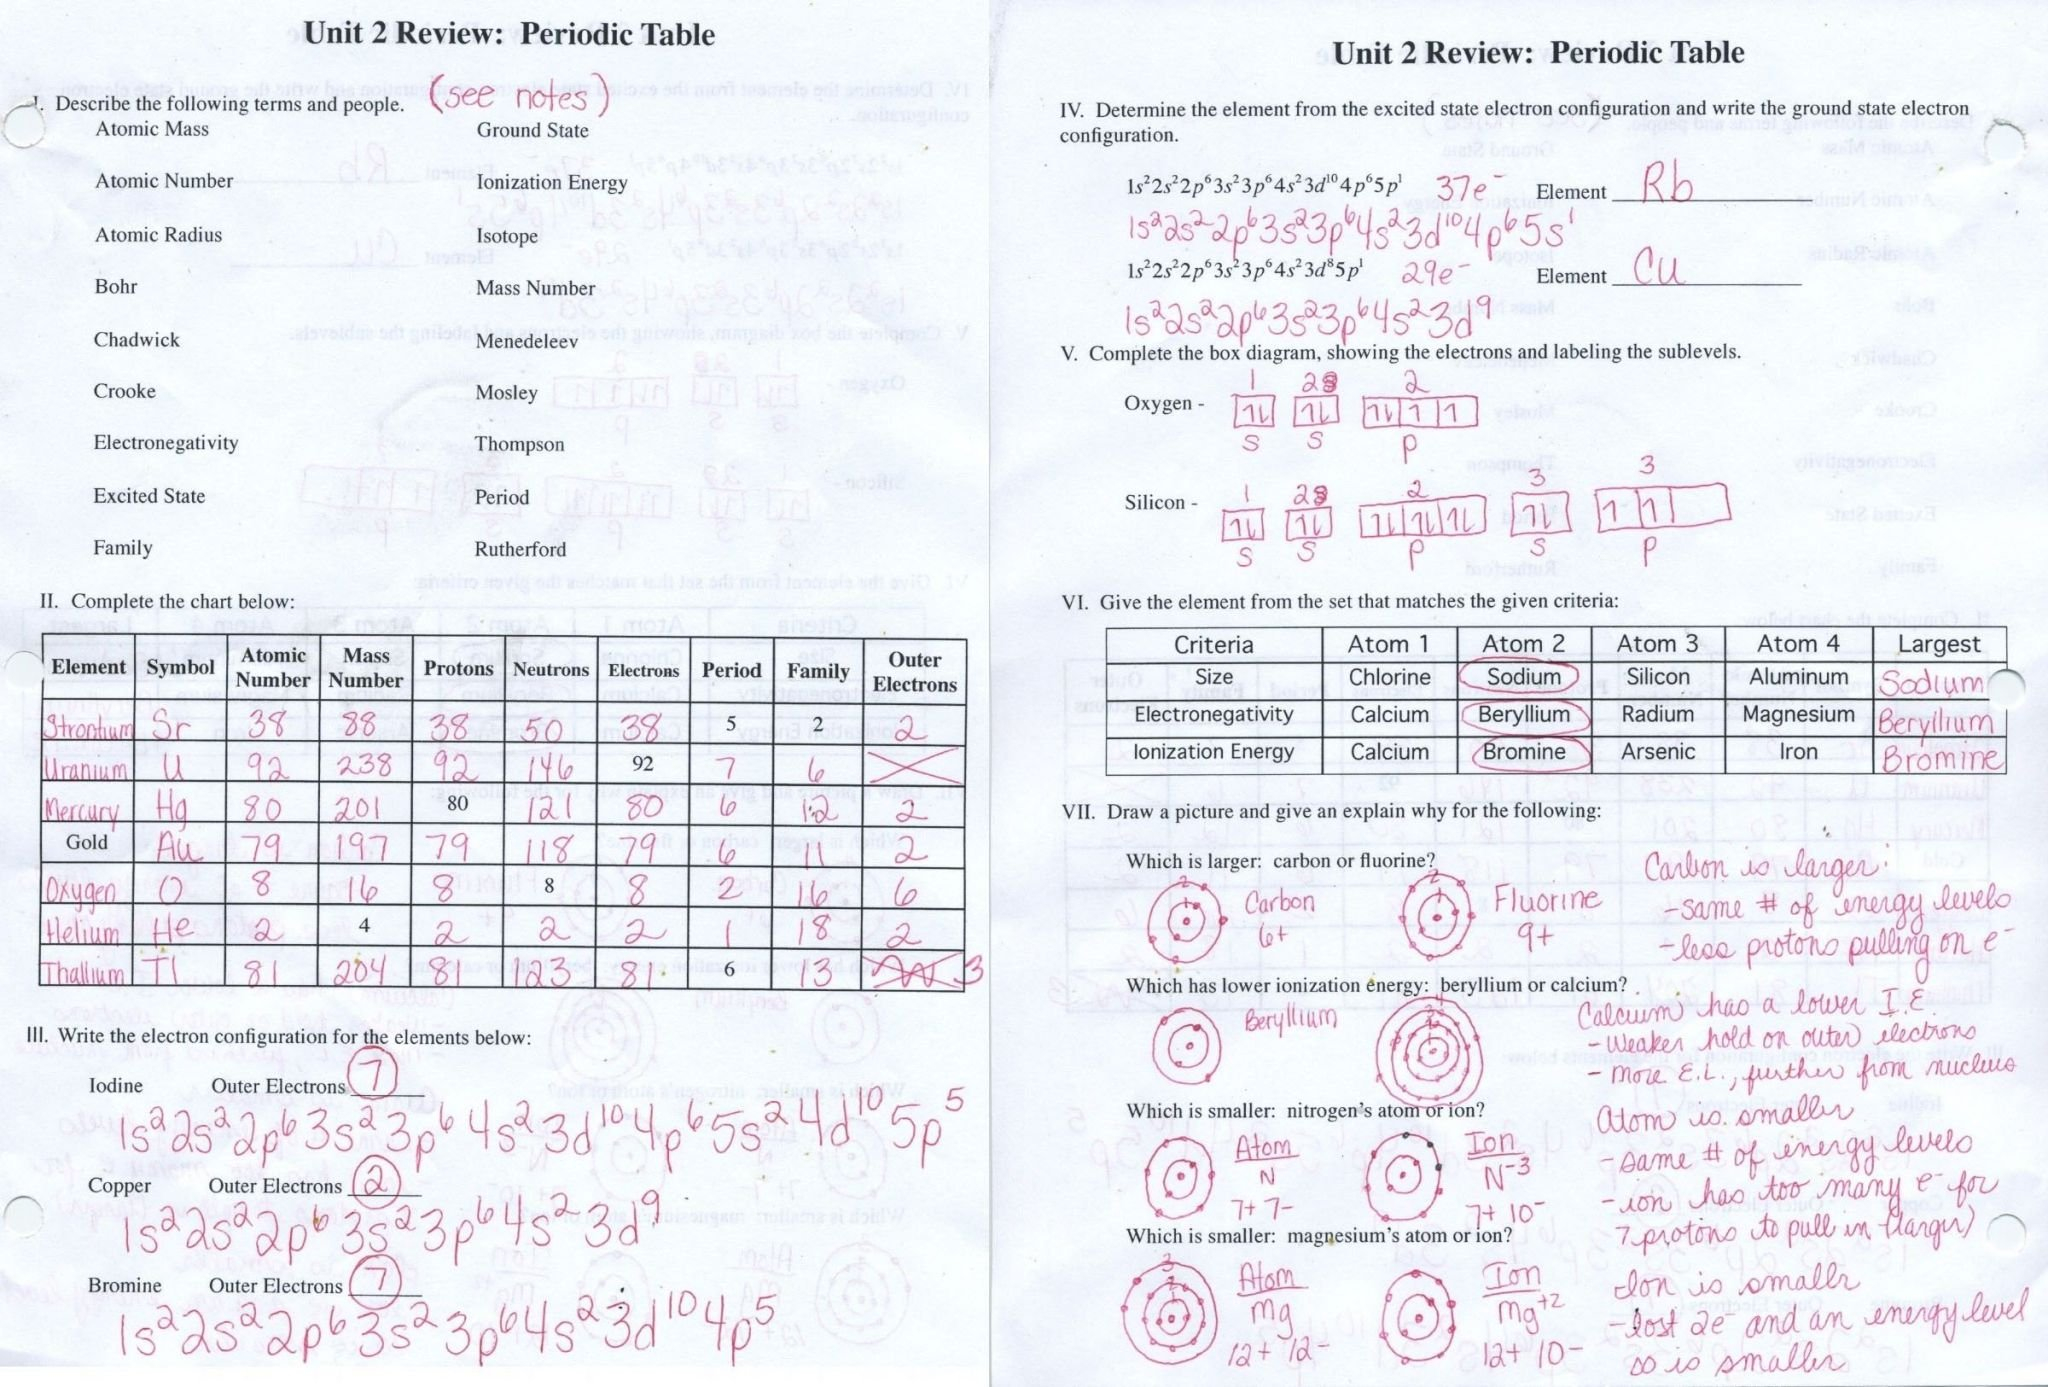 Isotopes Ions And Atoms Worksheet 1 Answer Key  Briefencounters Also Isotopes Ions And Atoms Worksheet 1 Answer Key